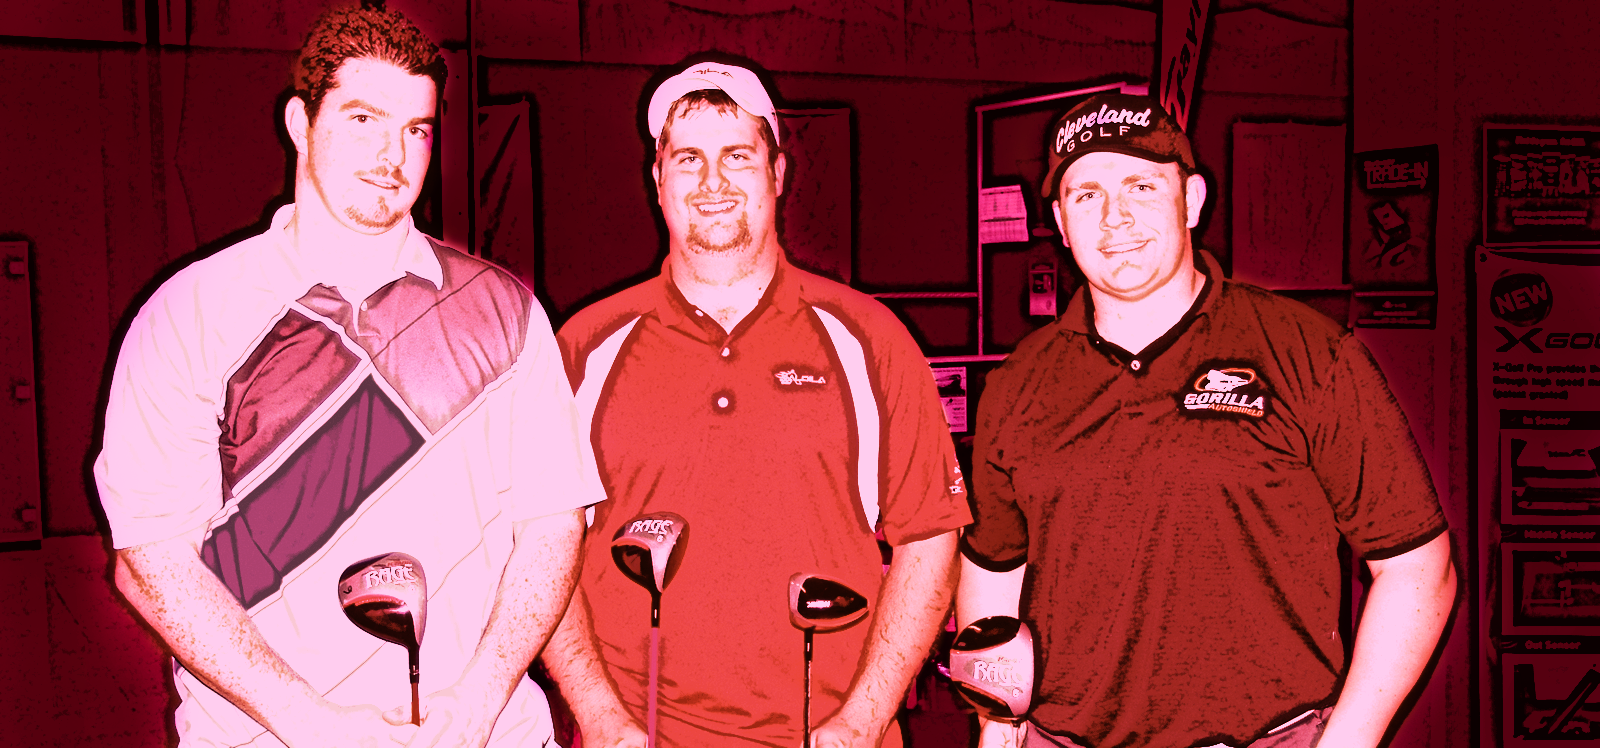 December Long Drive Competition at Primus Golf Academy a Success!